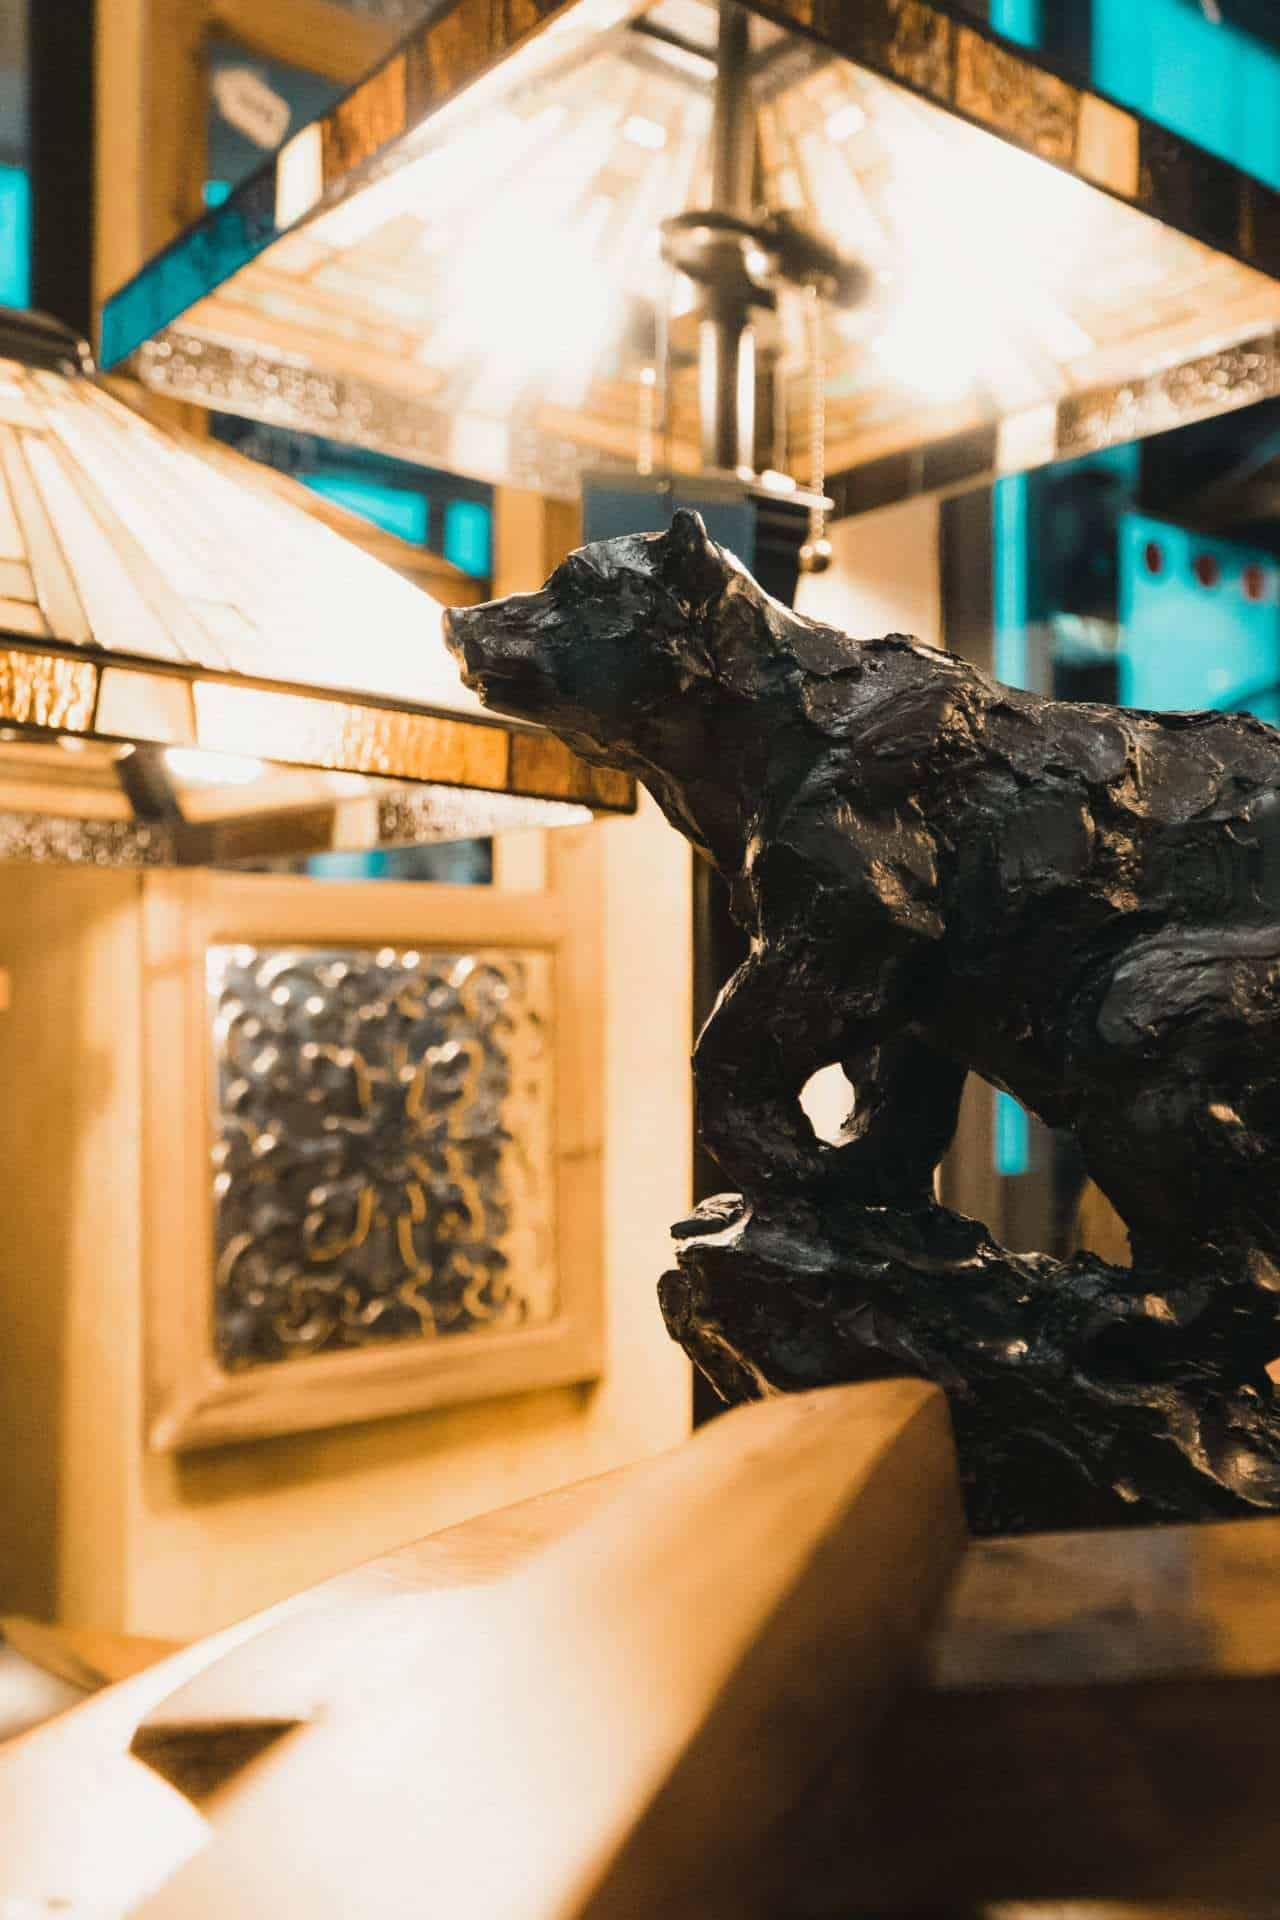 a close up shot of a small sculpture of a black bear and a couple of lamps in the background